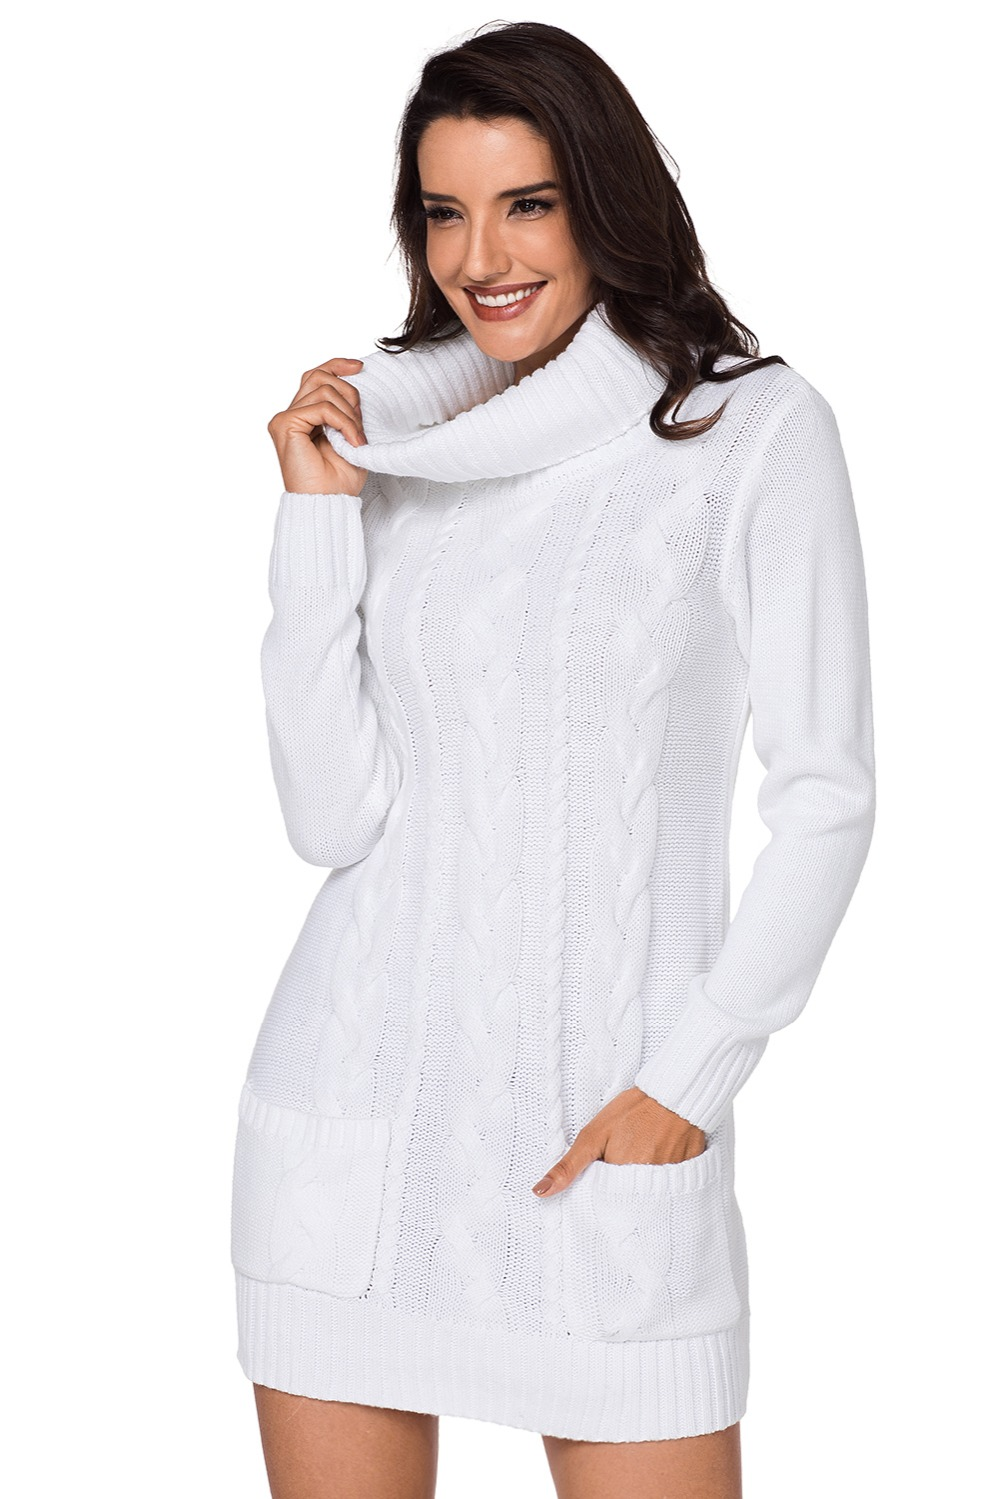 White-Cowl-Neck-Cable-Knit-Sweater-Dress-LC27836-1-4